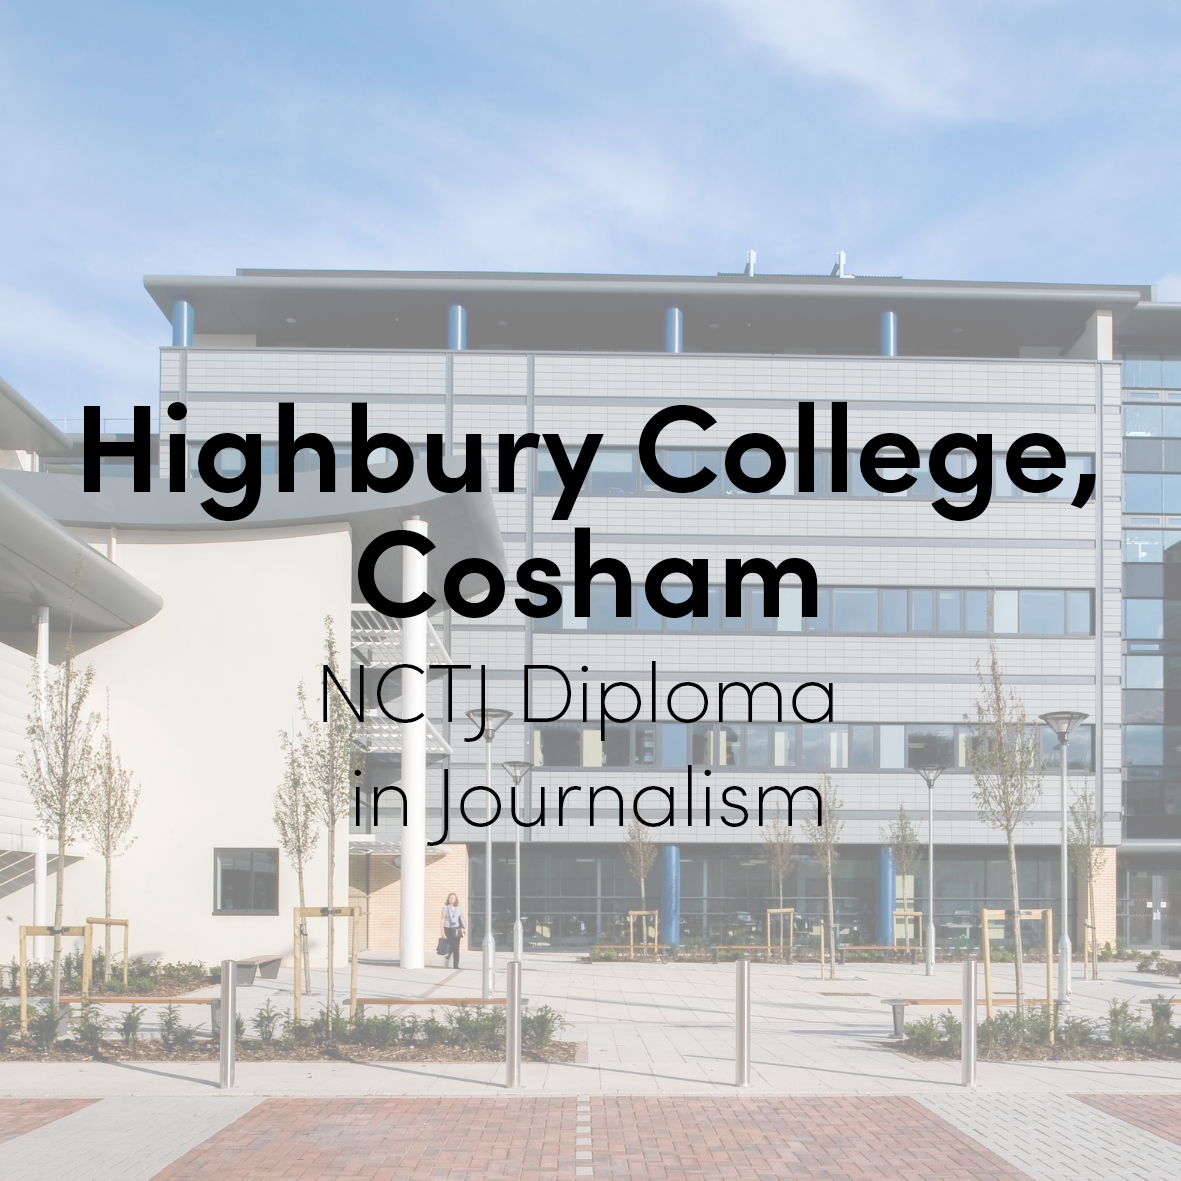 Highbury College, Portsmouth  (2015 - 2016)  NCTJ Diploma in Journalism (with shorthand, media law, reporting, court reporting and video journalism)  Course Leader: Dave King (now editor, Newsquest Berkshire) and Paul Foster (formerly Black Media and Portsmouth News)  Reporting tutor: Dr Jaron Murphy (formerly Portsmouth News community editor, now Solent University journalism lead)